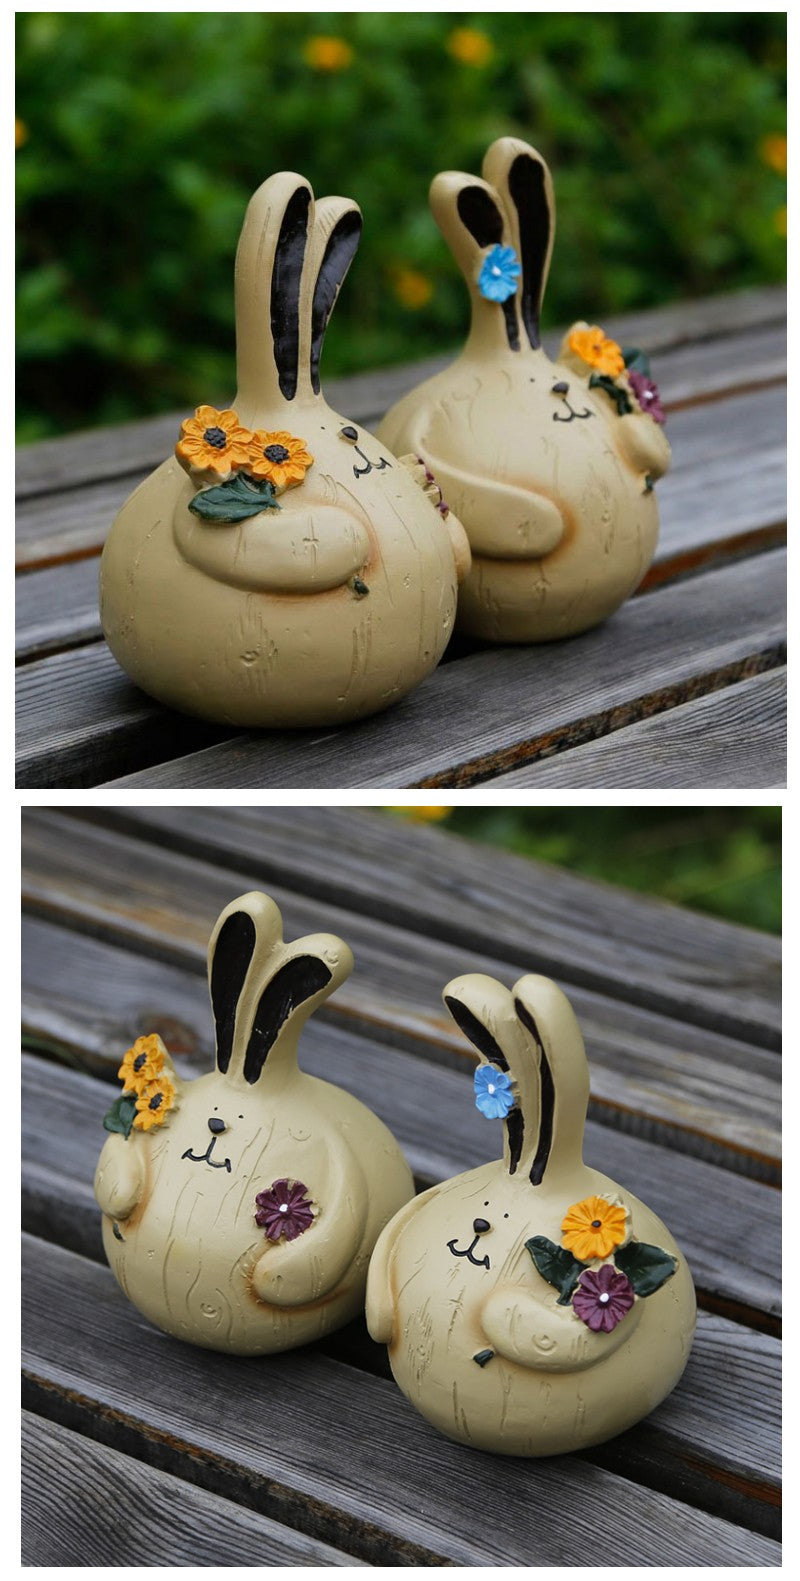 Two Lovely Rabbits with Flower Statue, Resin Statue for Garden, Animal Statue for Garden Ornament, Villa Outdoor Decor Gardening Ideas